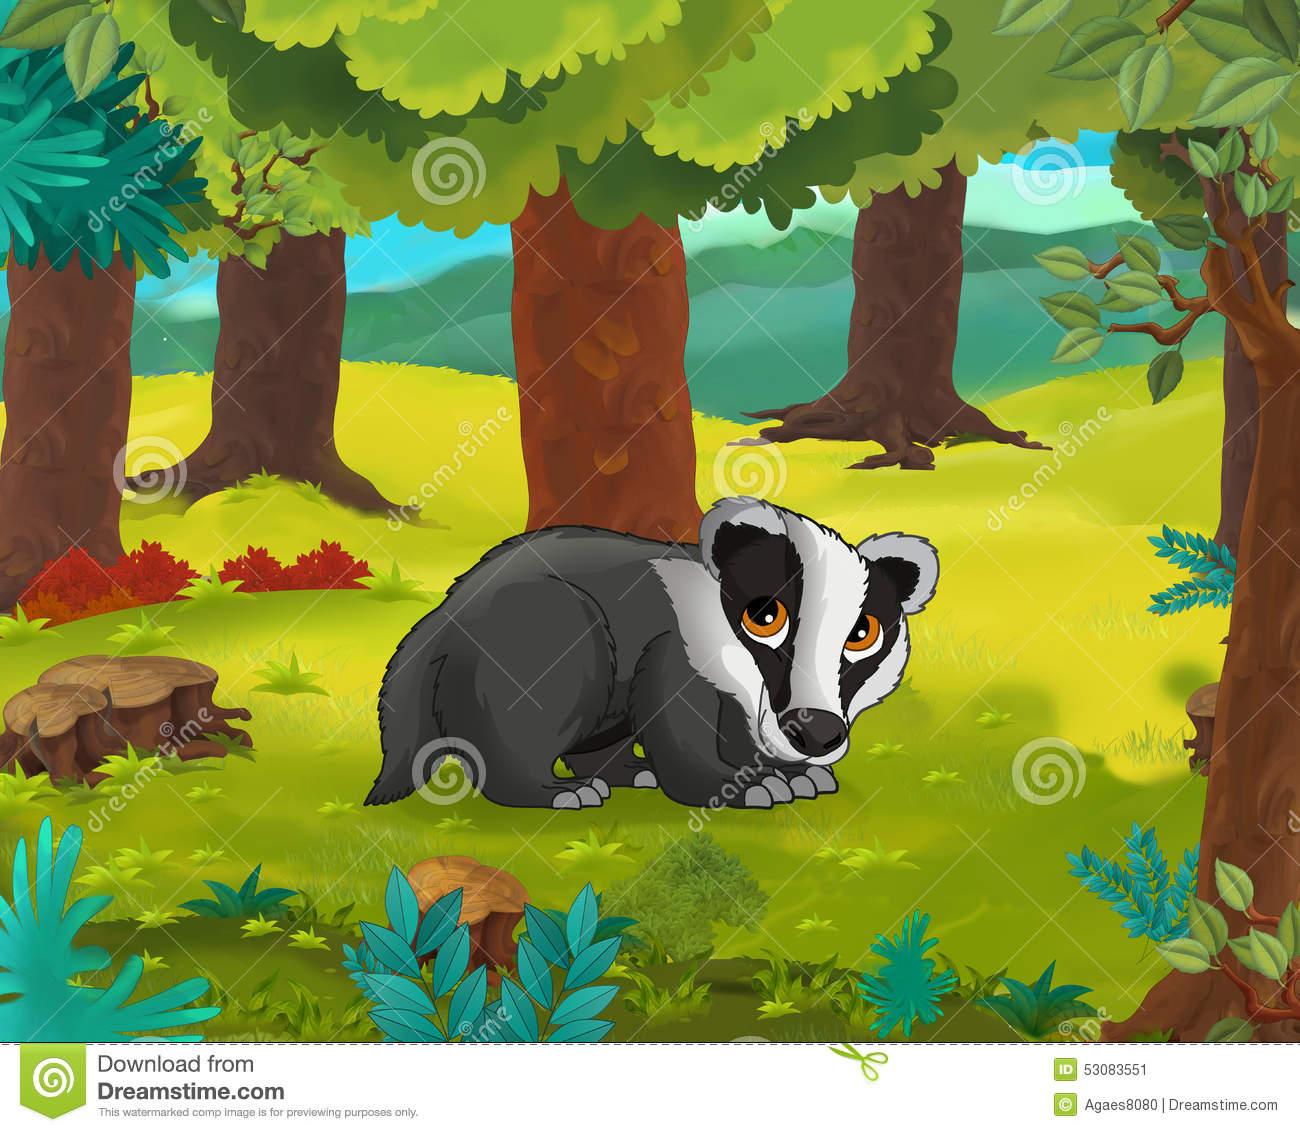 Stock Illustration Magic Castle besides Opossum Animal Cartoon Coloring Book 20474114 in addition 38 Space Theme Tonight Experimenting With together with Tlacuache also Stock Illustration Set Cute Cartoon Animals Mammals Living Different Parts World Forests Seas Tropical Jungles Koala Lemur Monke Image64881919. on opossum cartoon illustration